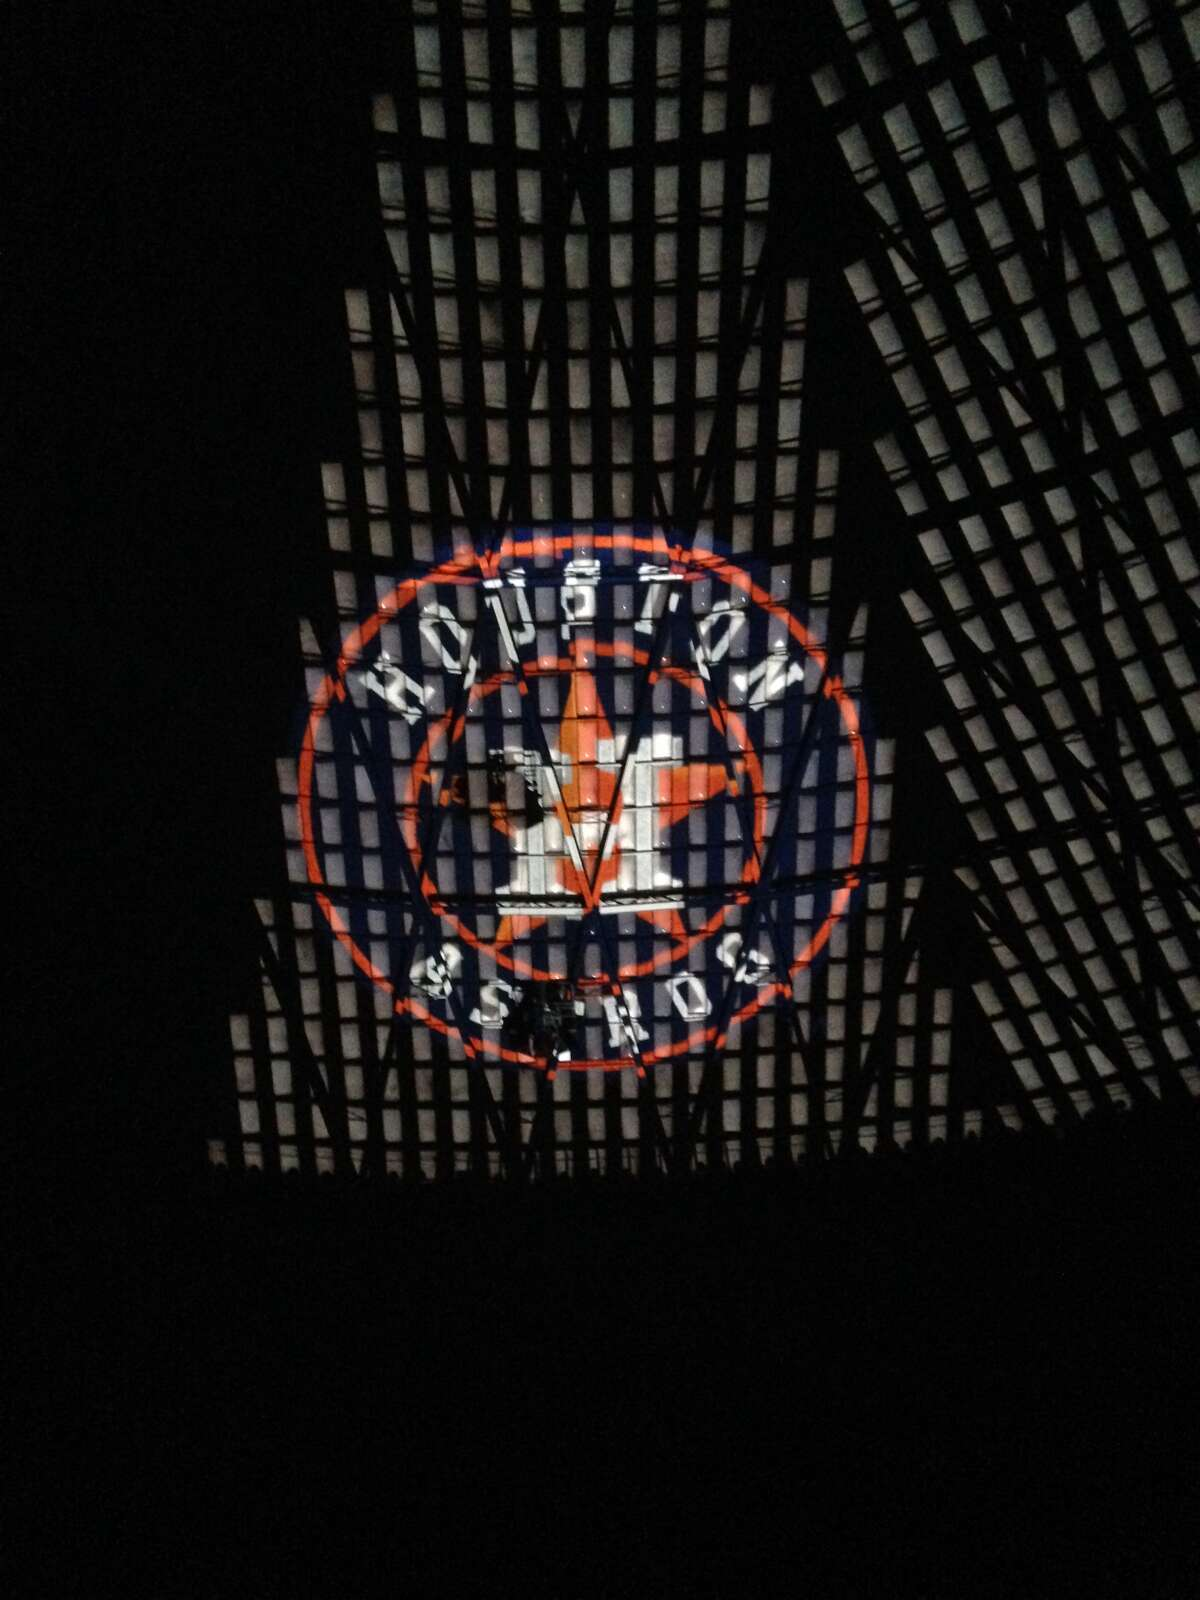 Images of Houston's culture are projected onto the Astrodome ceiling during the demonstration of a light show that could be on display during the 2017 Super Bowl.